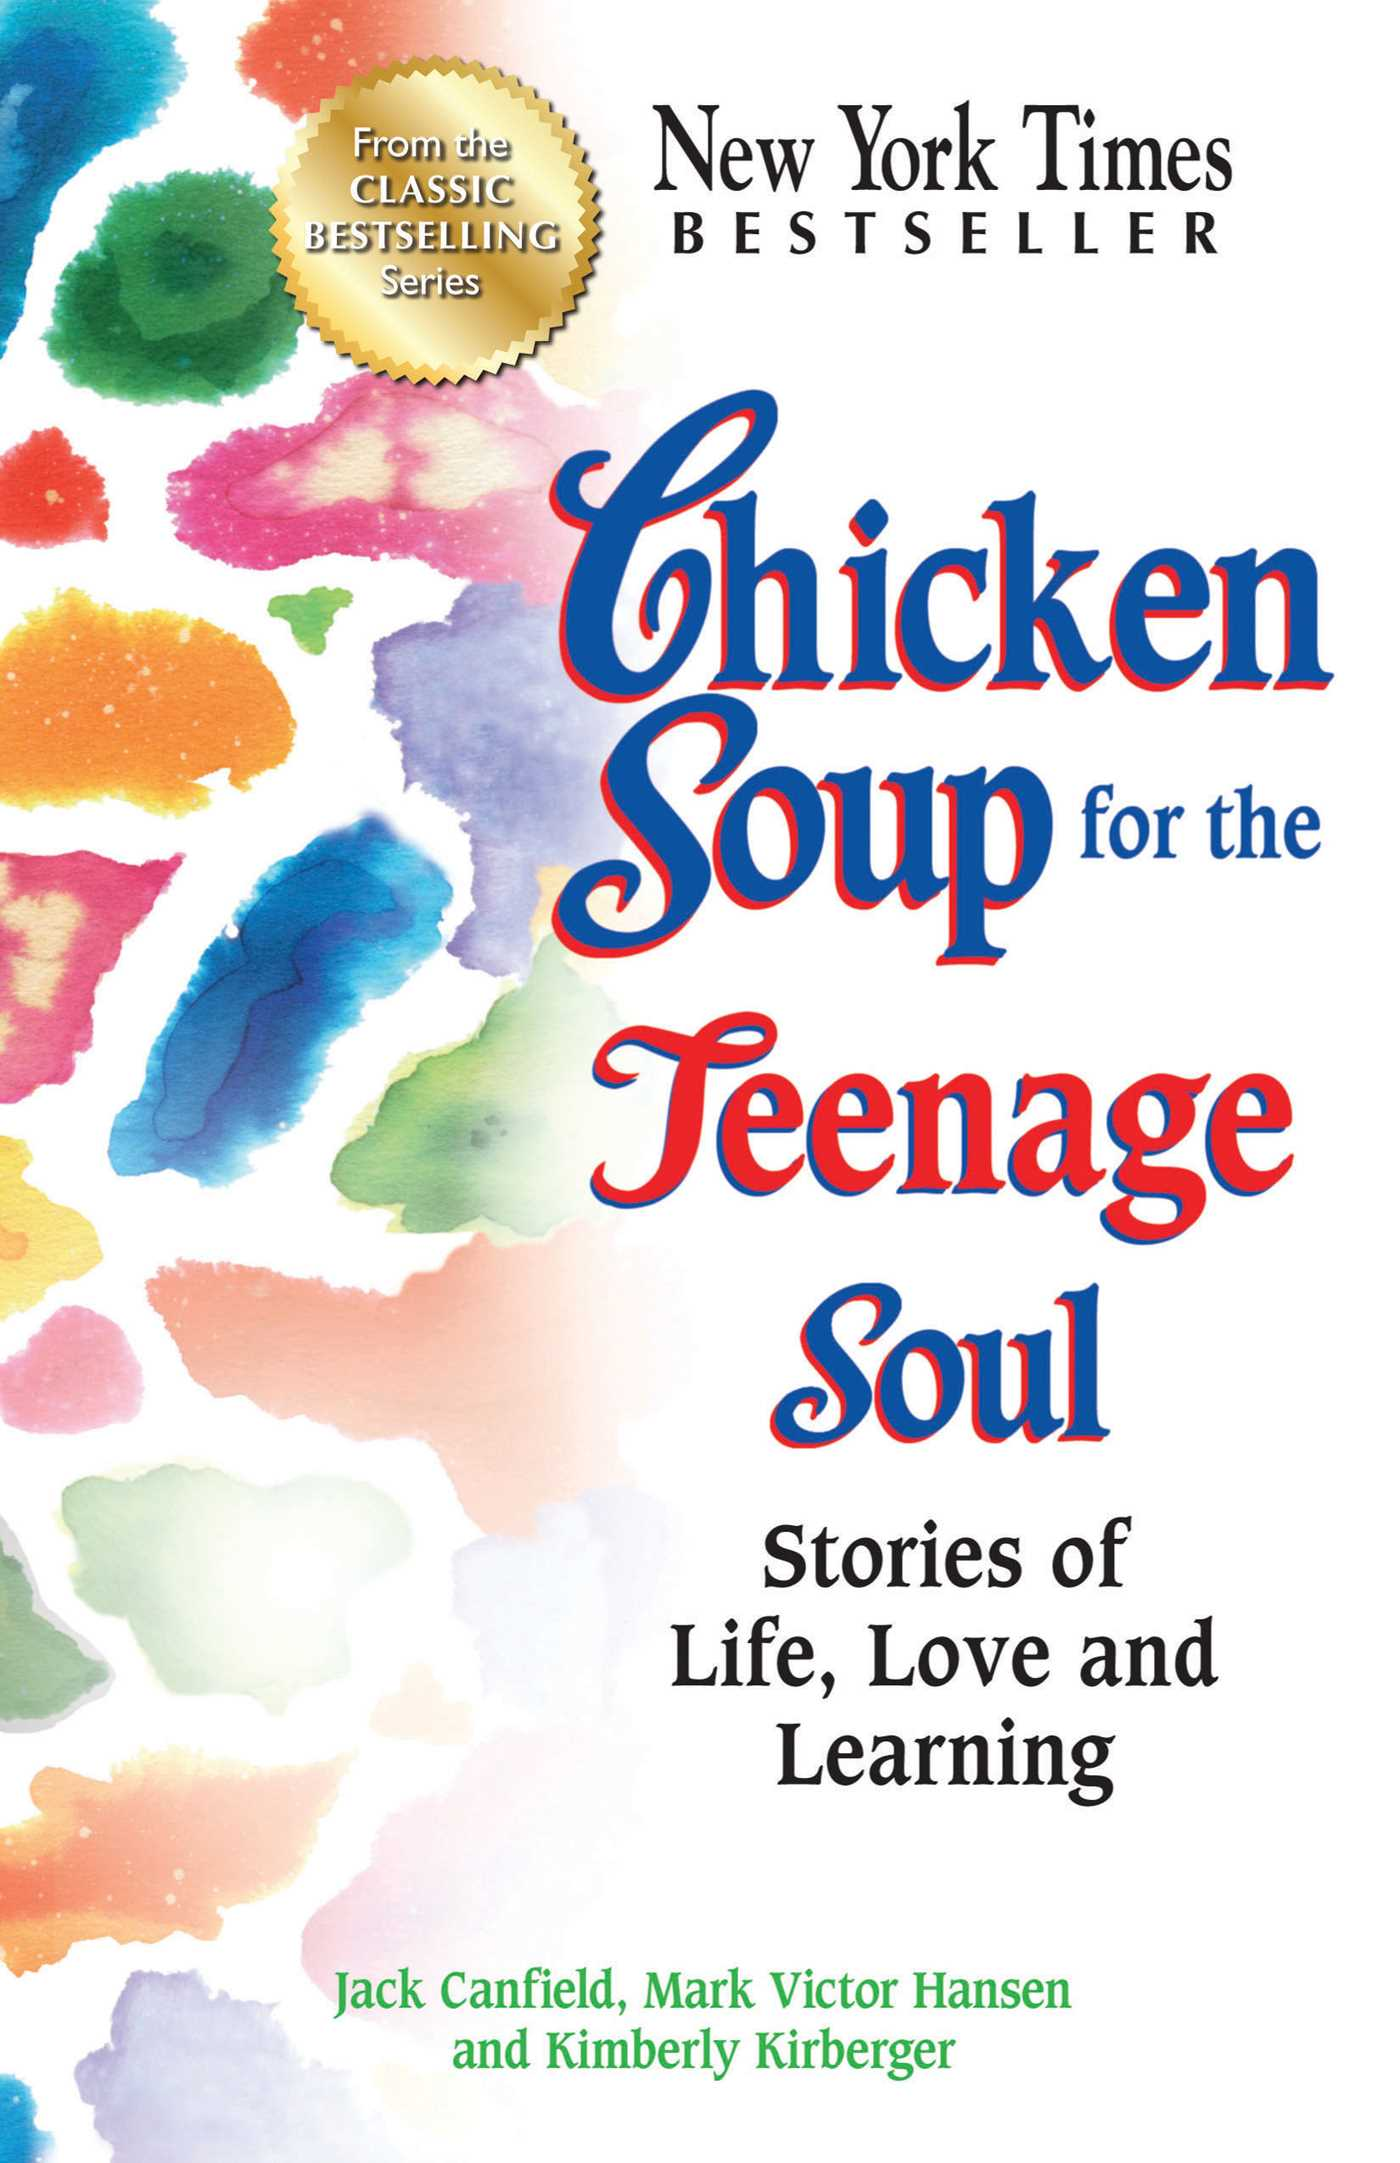 Chicken Soup for the Teenage Soul Stories of Life, Love and Learning